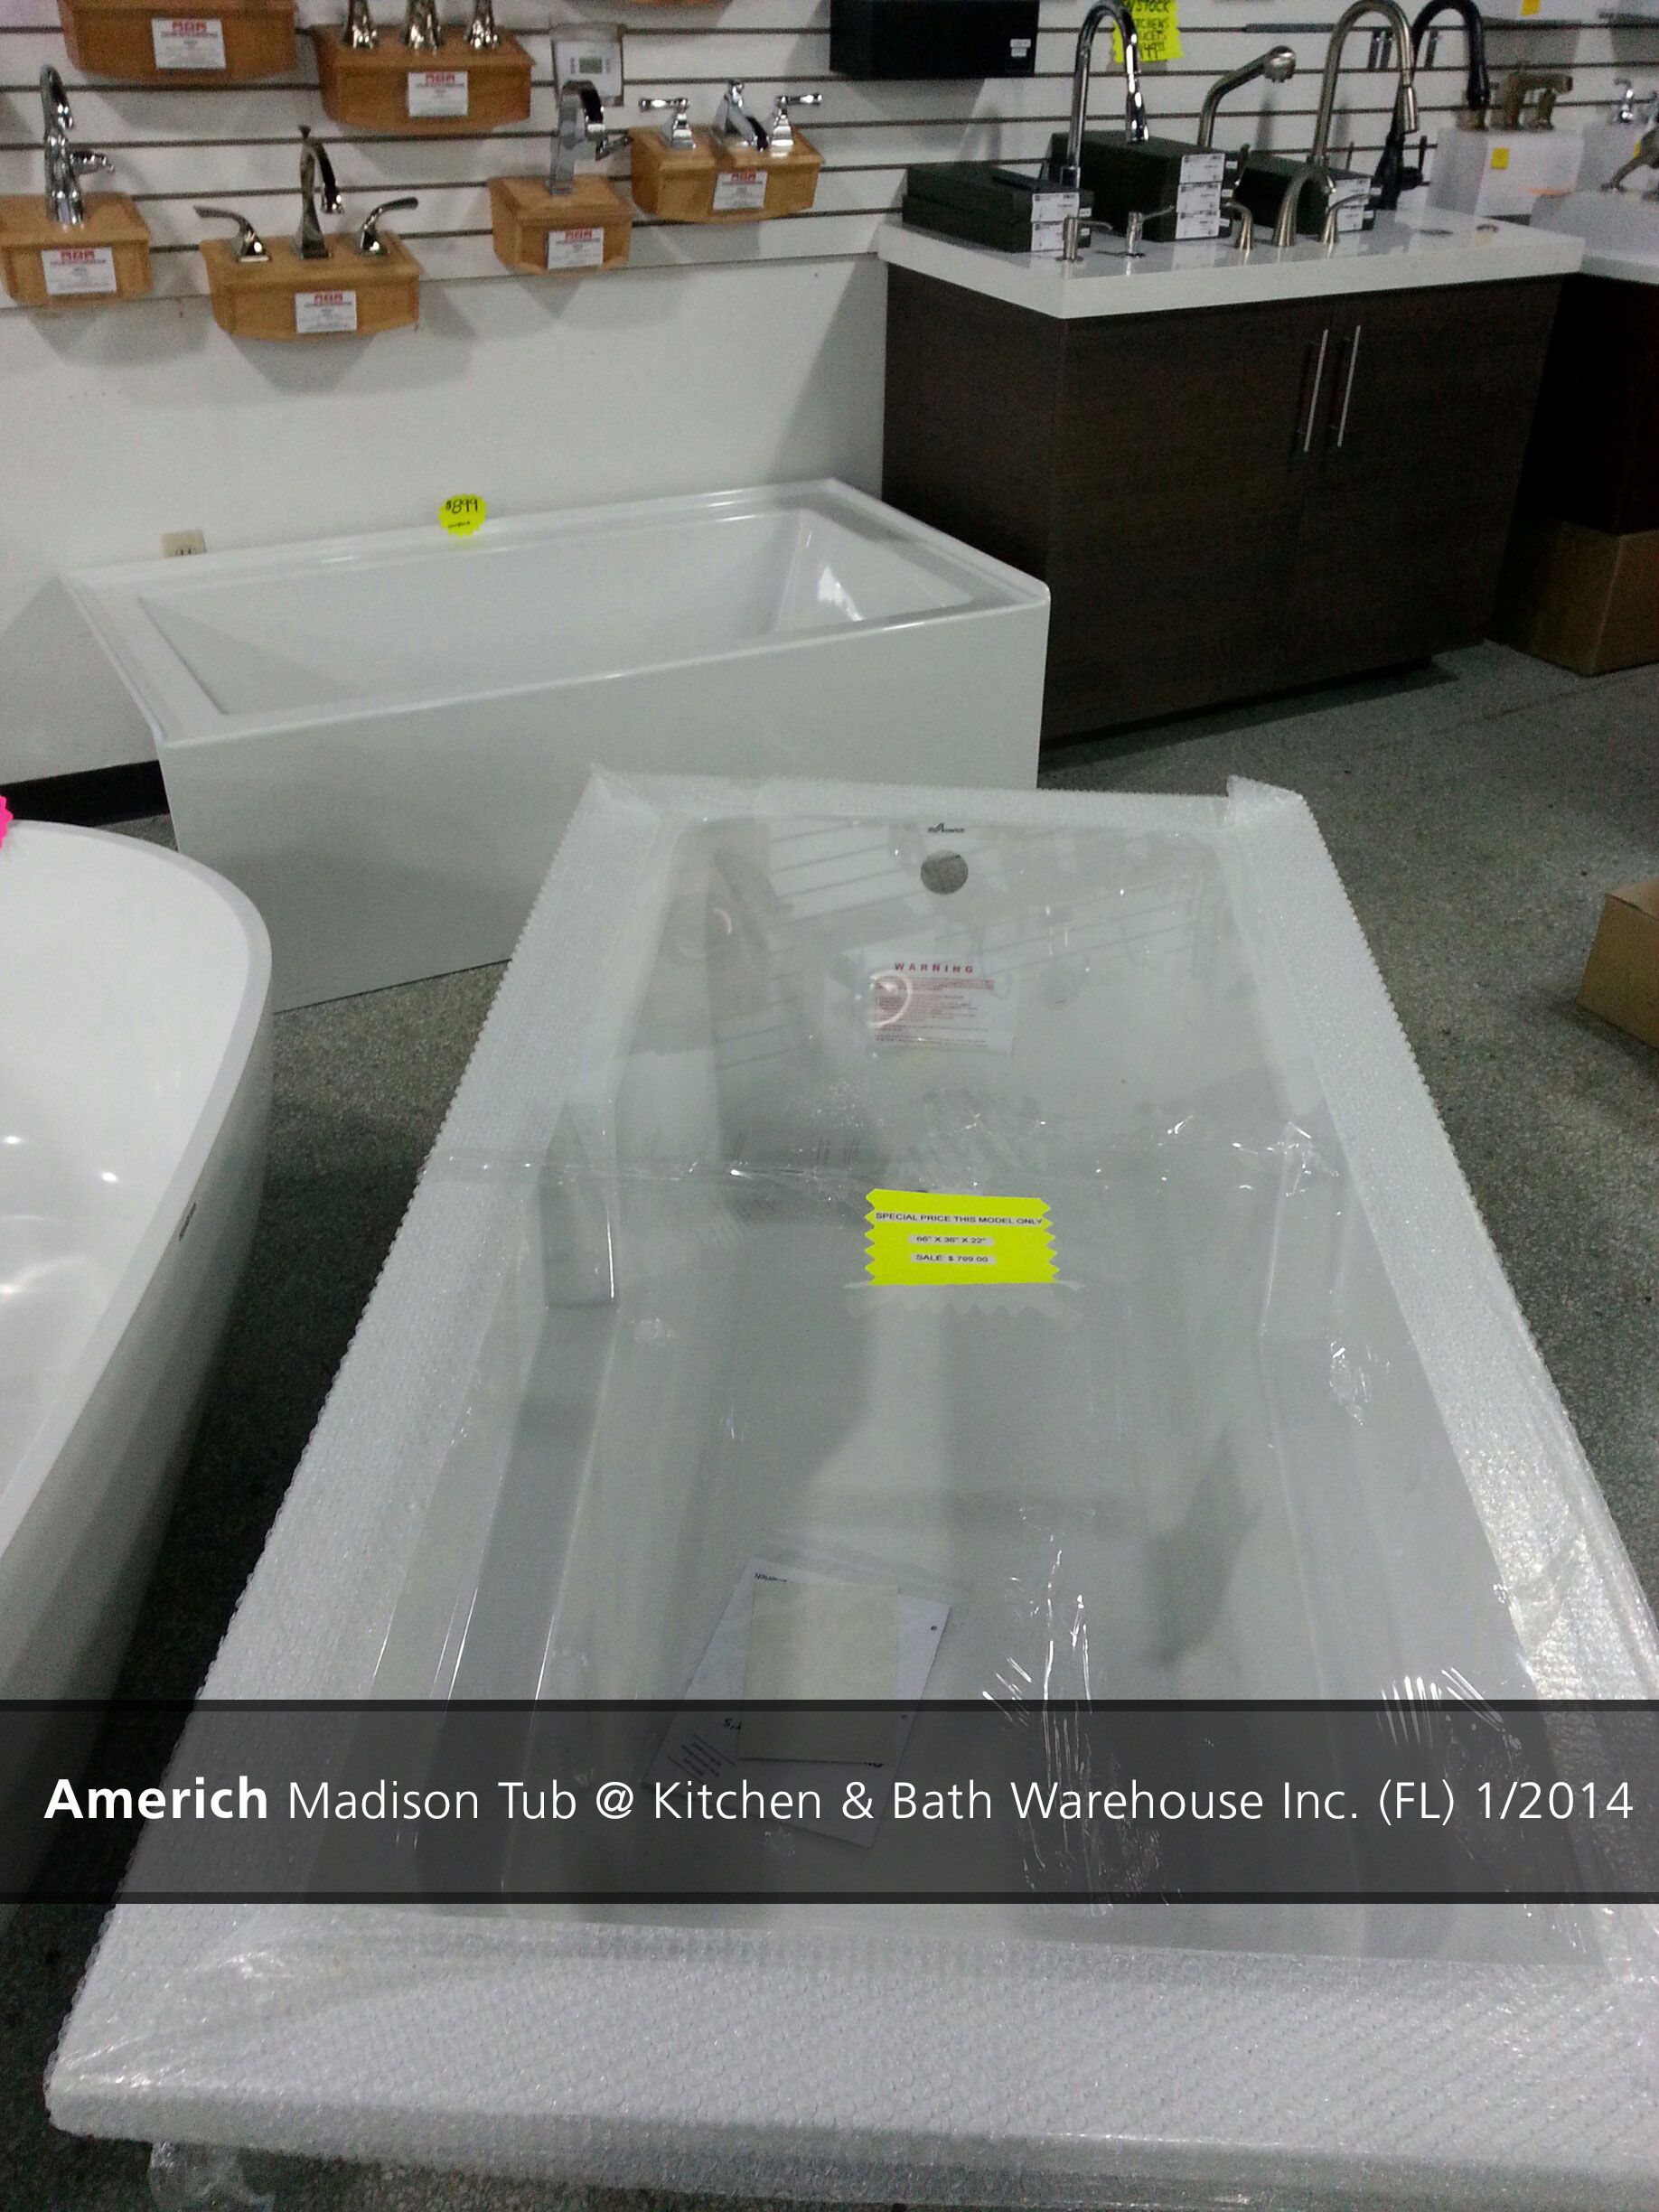 Americh Madison Tub @ Kitchen & Bath Warehouse Inc. (FL) - 2014 ...